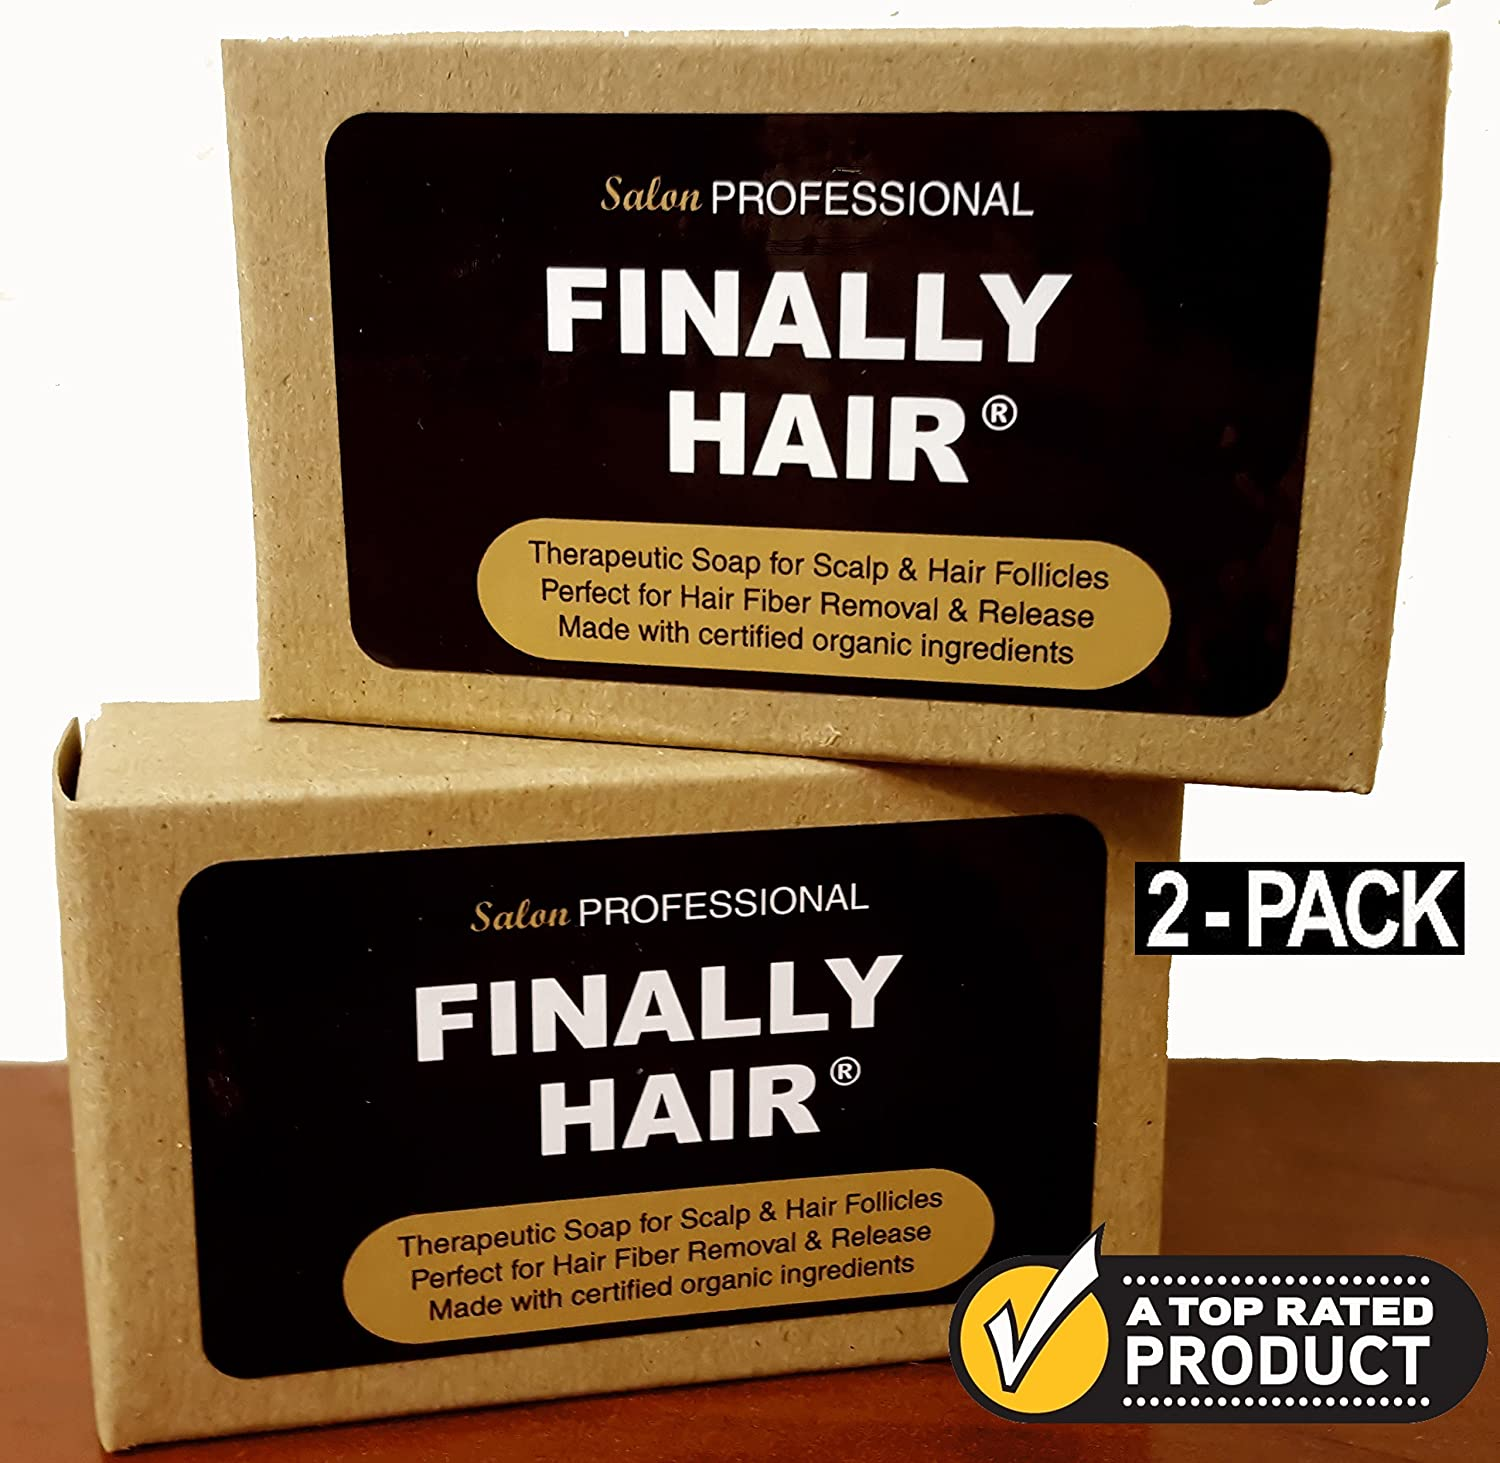 Shampoo & Conditioner Bars To Help Prevent Hair Loss. Two Therapy Bars Packed with Organic Ingredients Fight Hair Loss For Healthier Hair & Fiber Removal (2 Pack - two 4 oz bars) Finally Hair Corporation